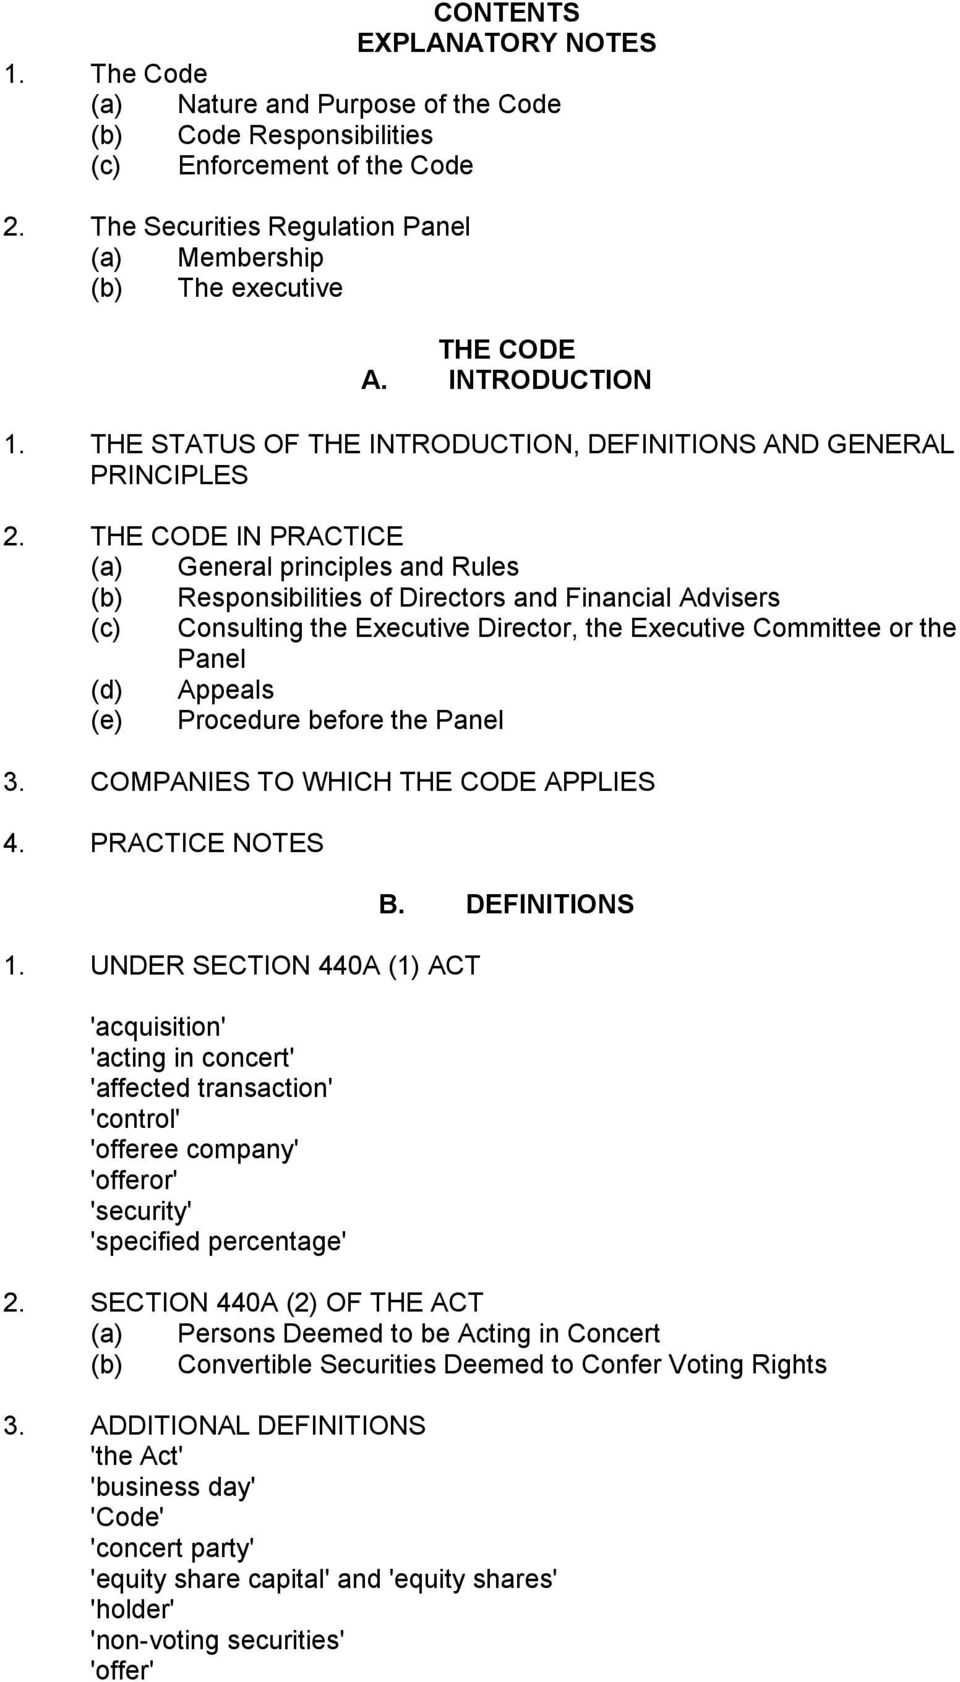 THE CODE IN PRACTICE (a) General principles and Rules (b) Responsibilities of Directors and Financial Advisers (c) Consulting the Executive Director, the Executive Committee or the Panel (d) Appeals